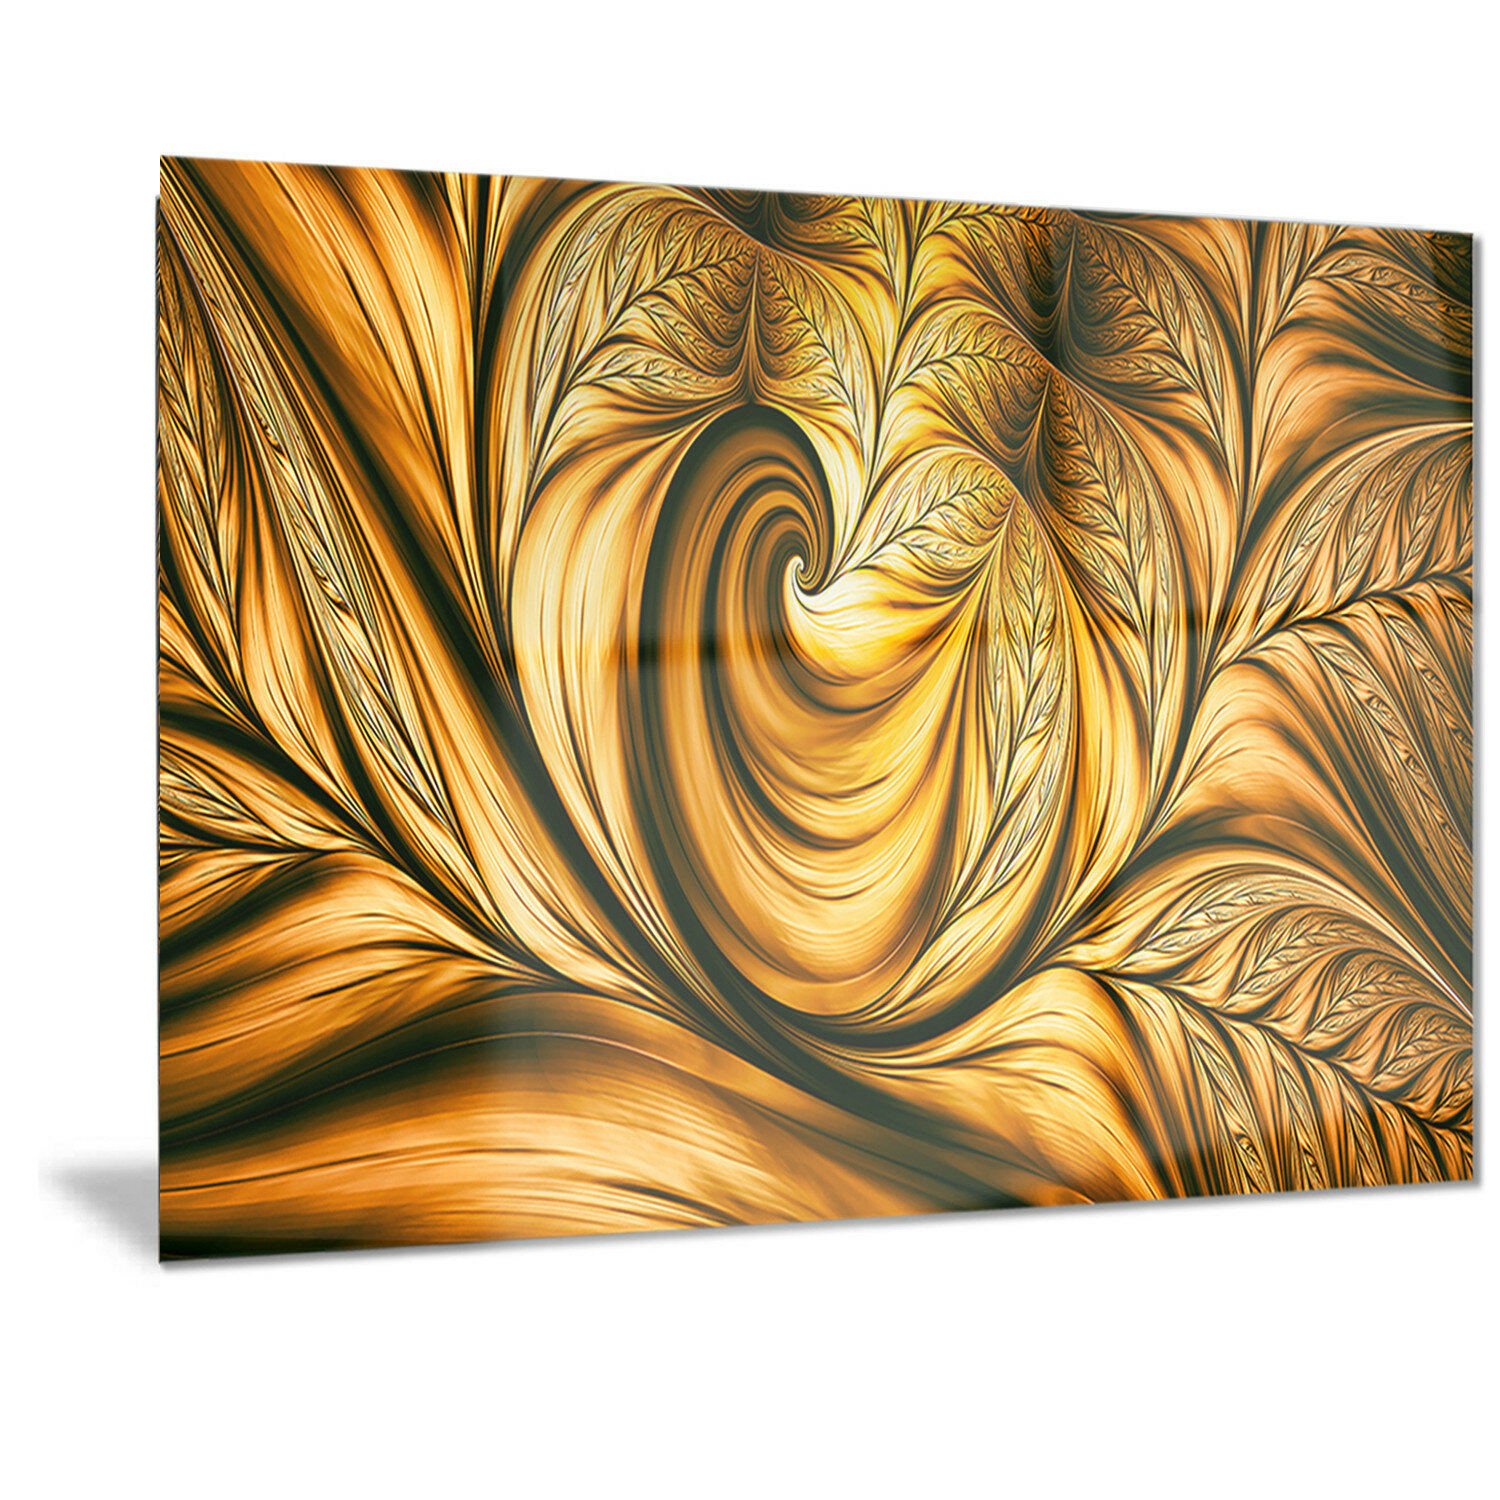 DesignArt Metal \'Golden Dream Abstract\' Graphic Art | Wayfair